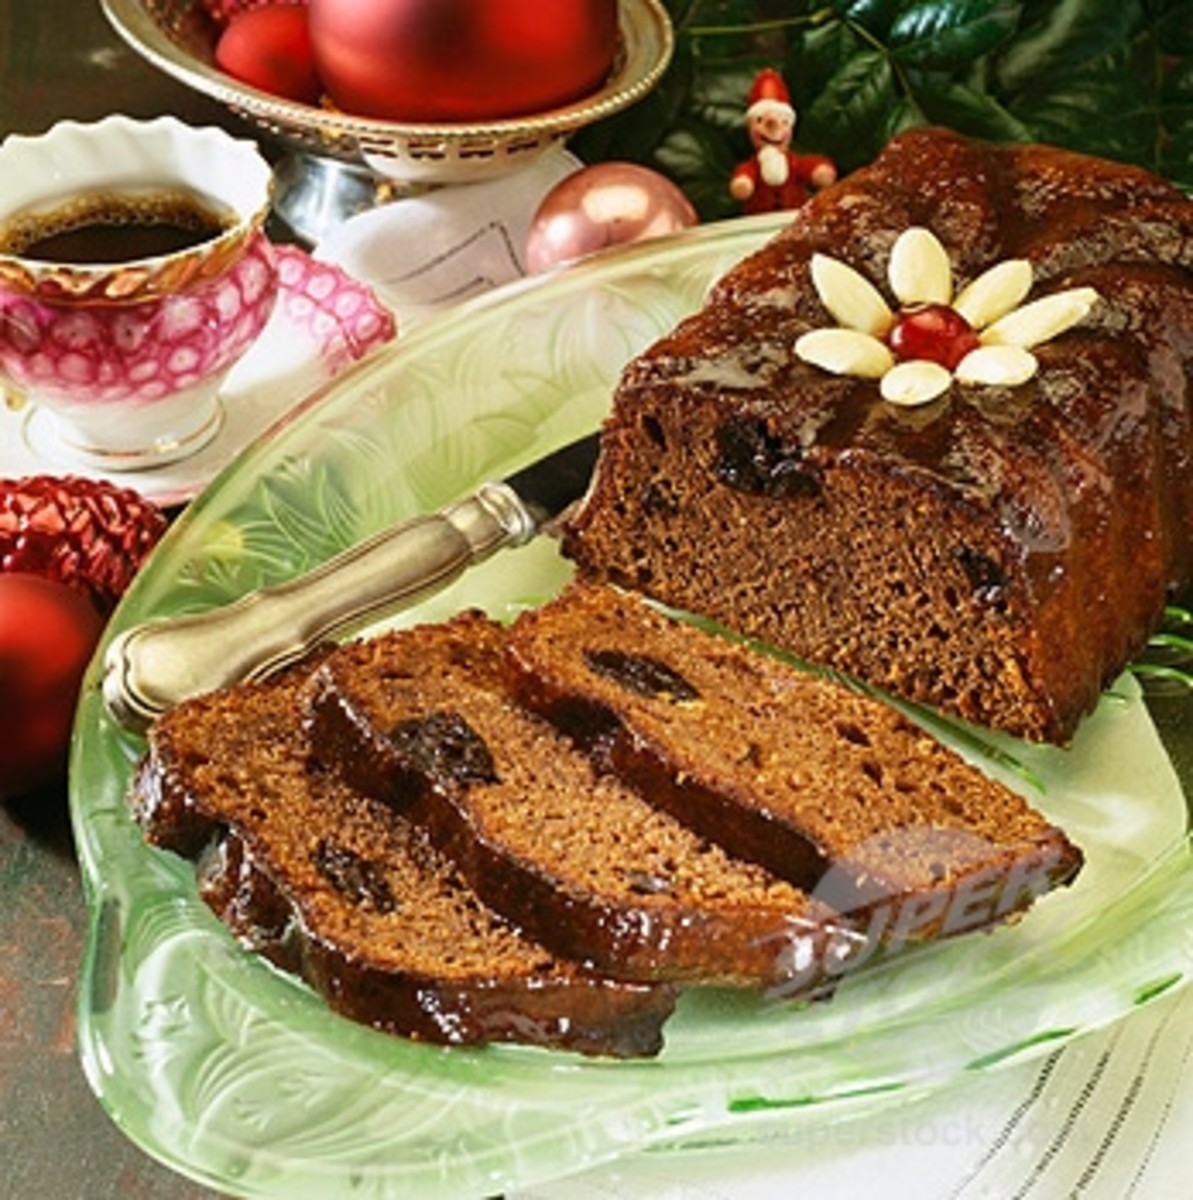 Sugarless Christmas Cake Recipe For Diabetics